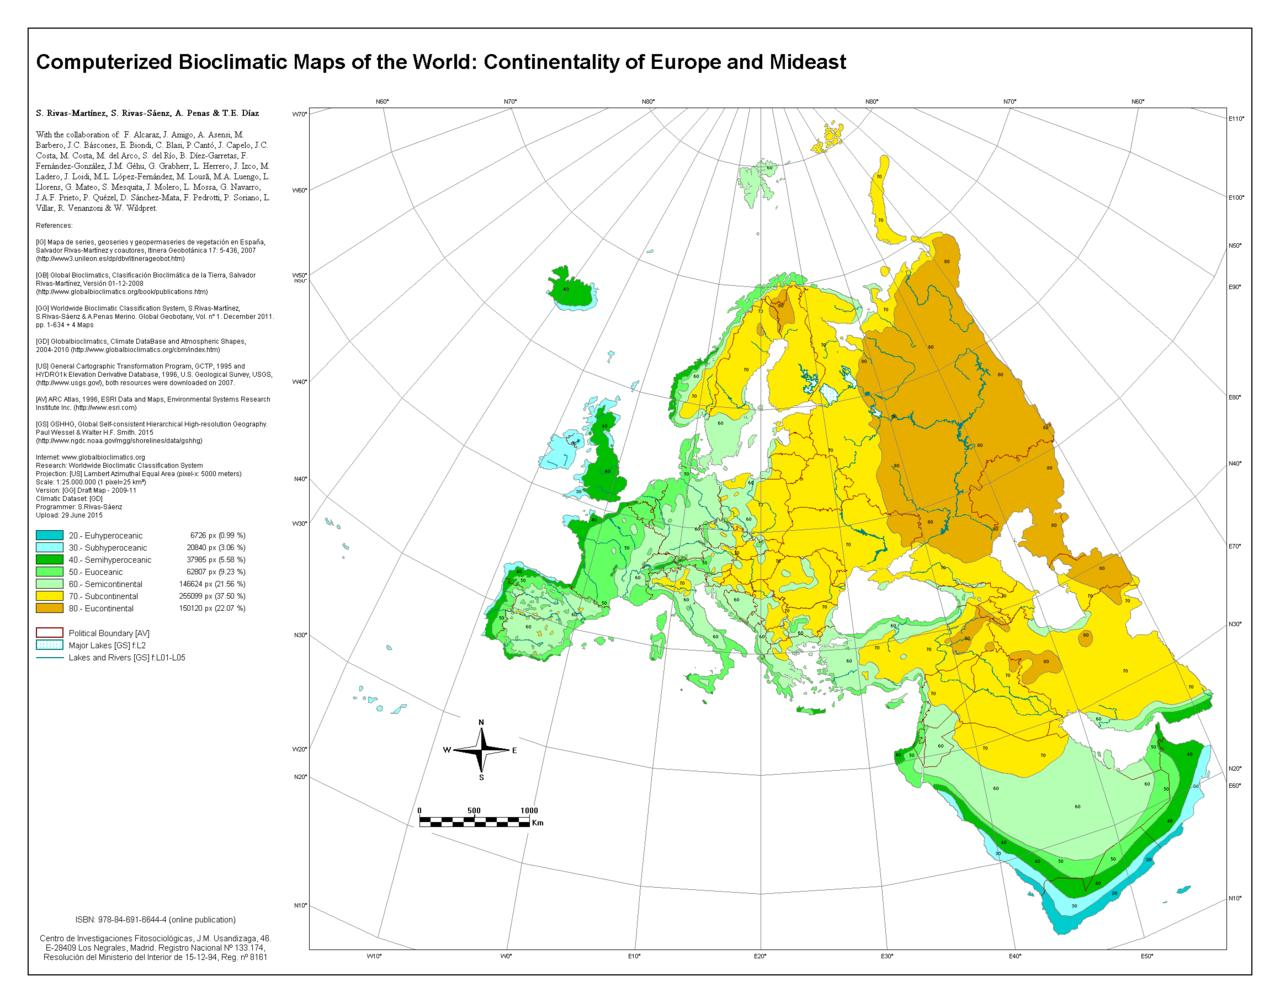 Mappe climatiche-europe_continentality_gb.jpg